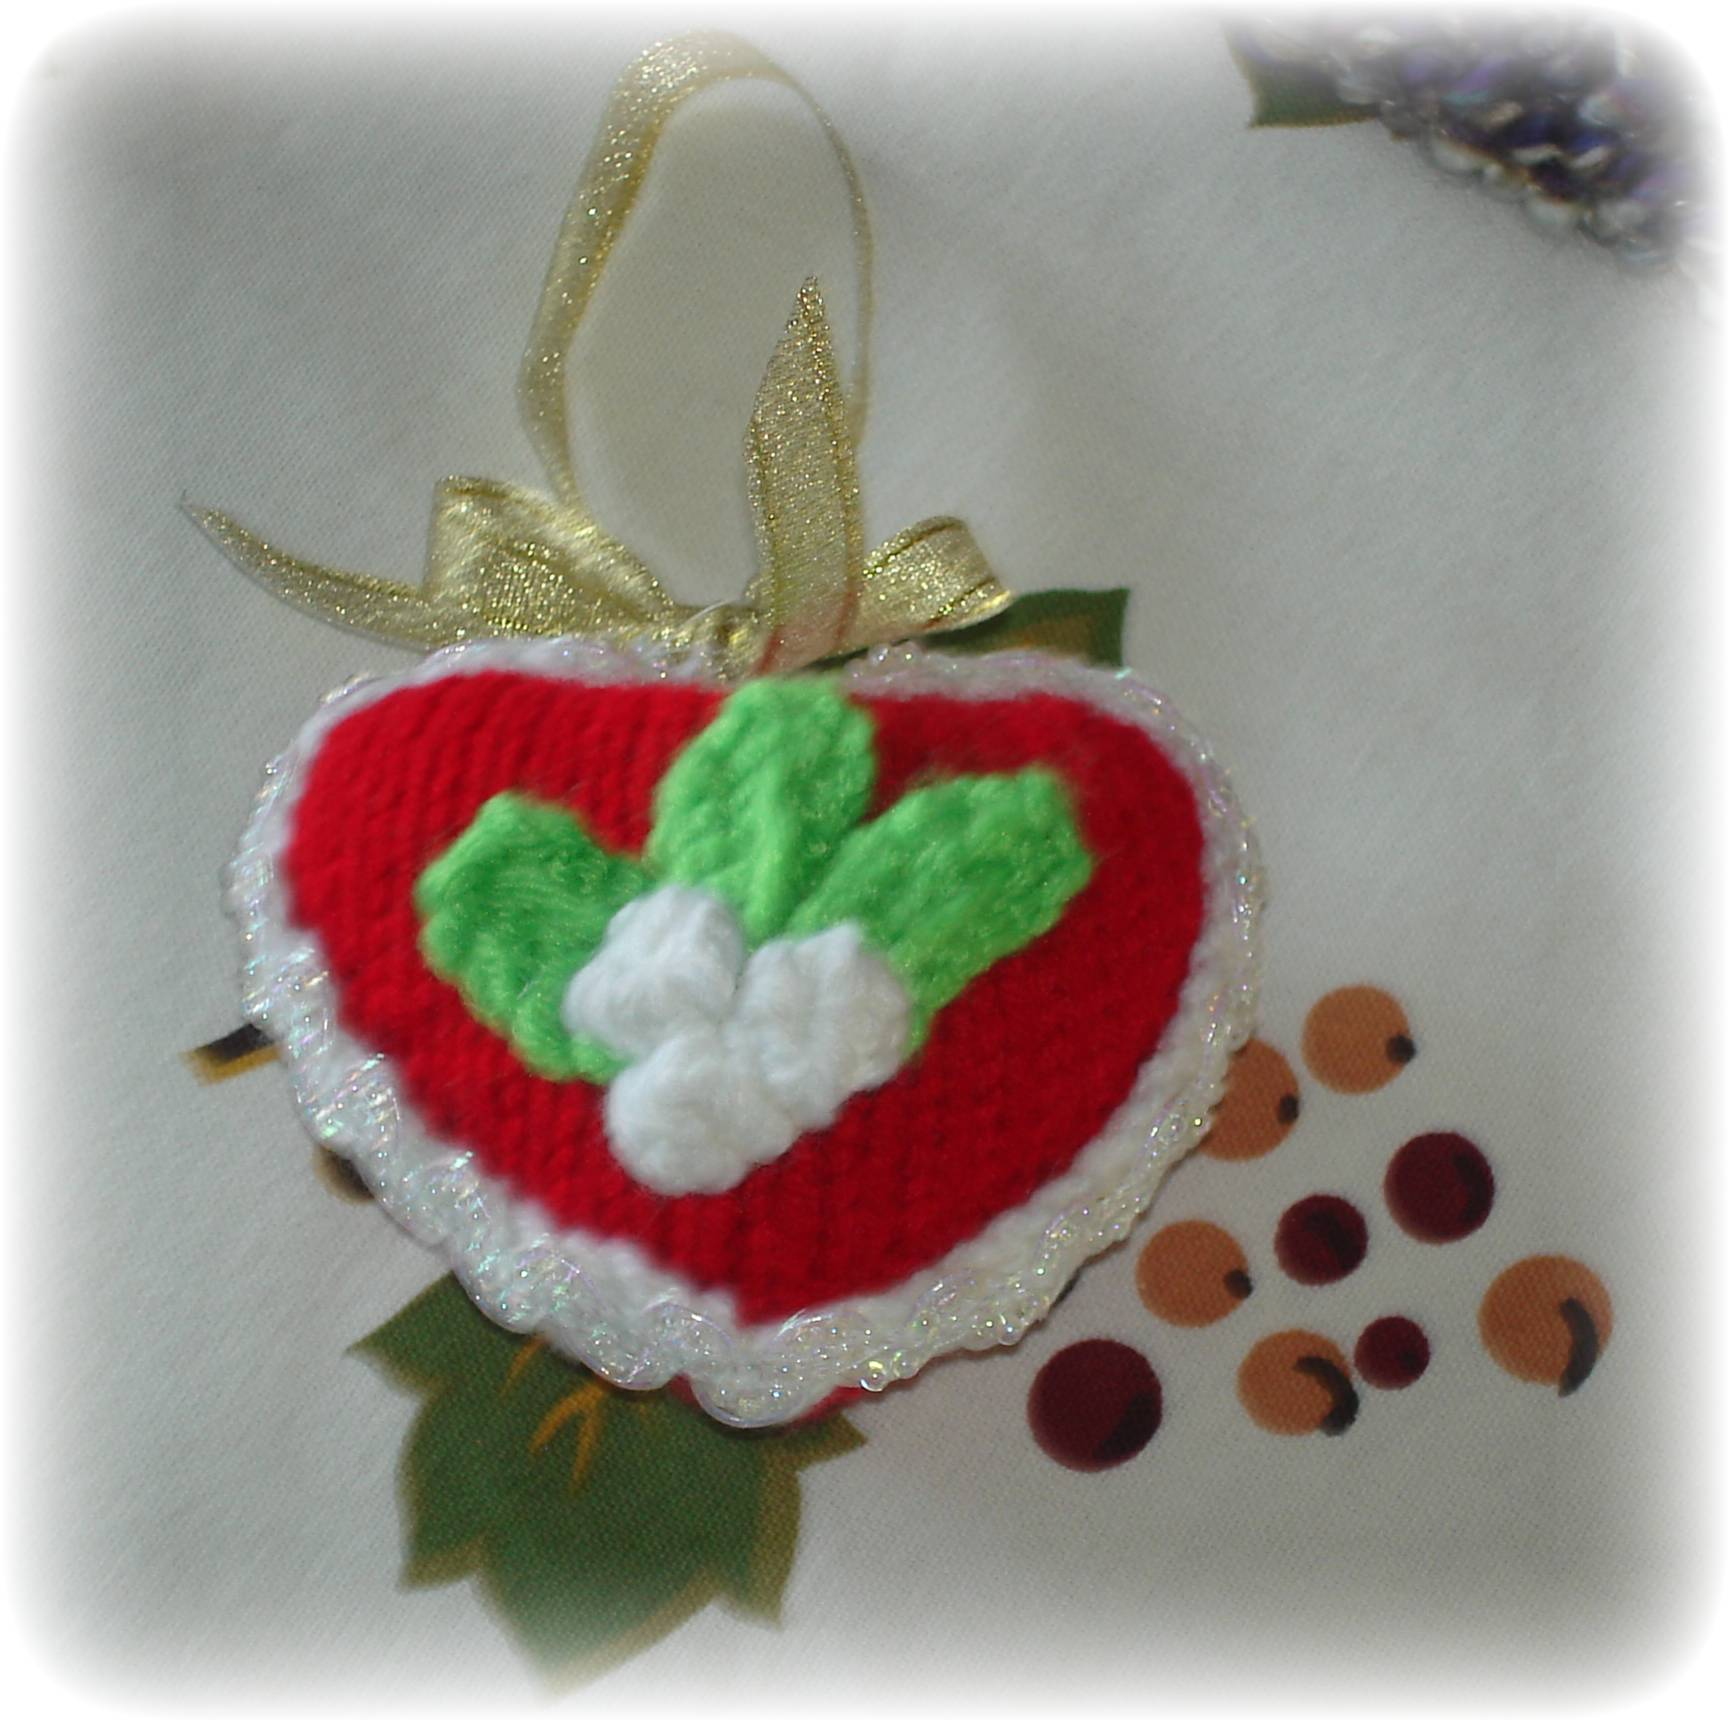 Knitted Heart for St. Valentine